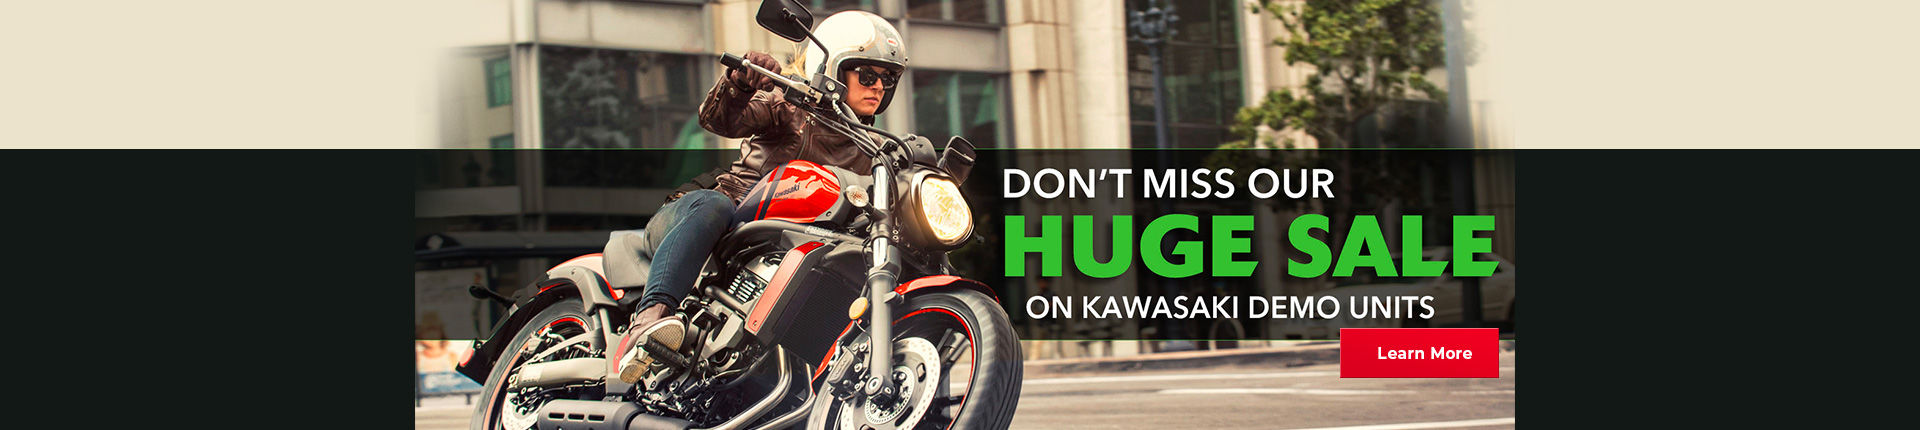 Huge Sale Kawasaki